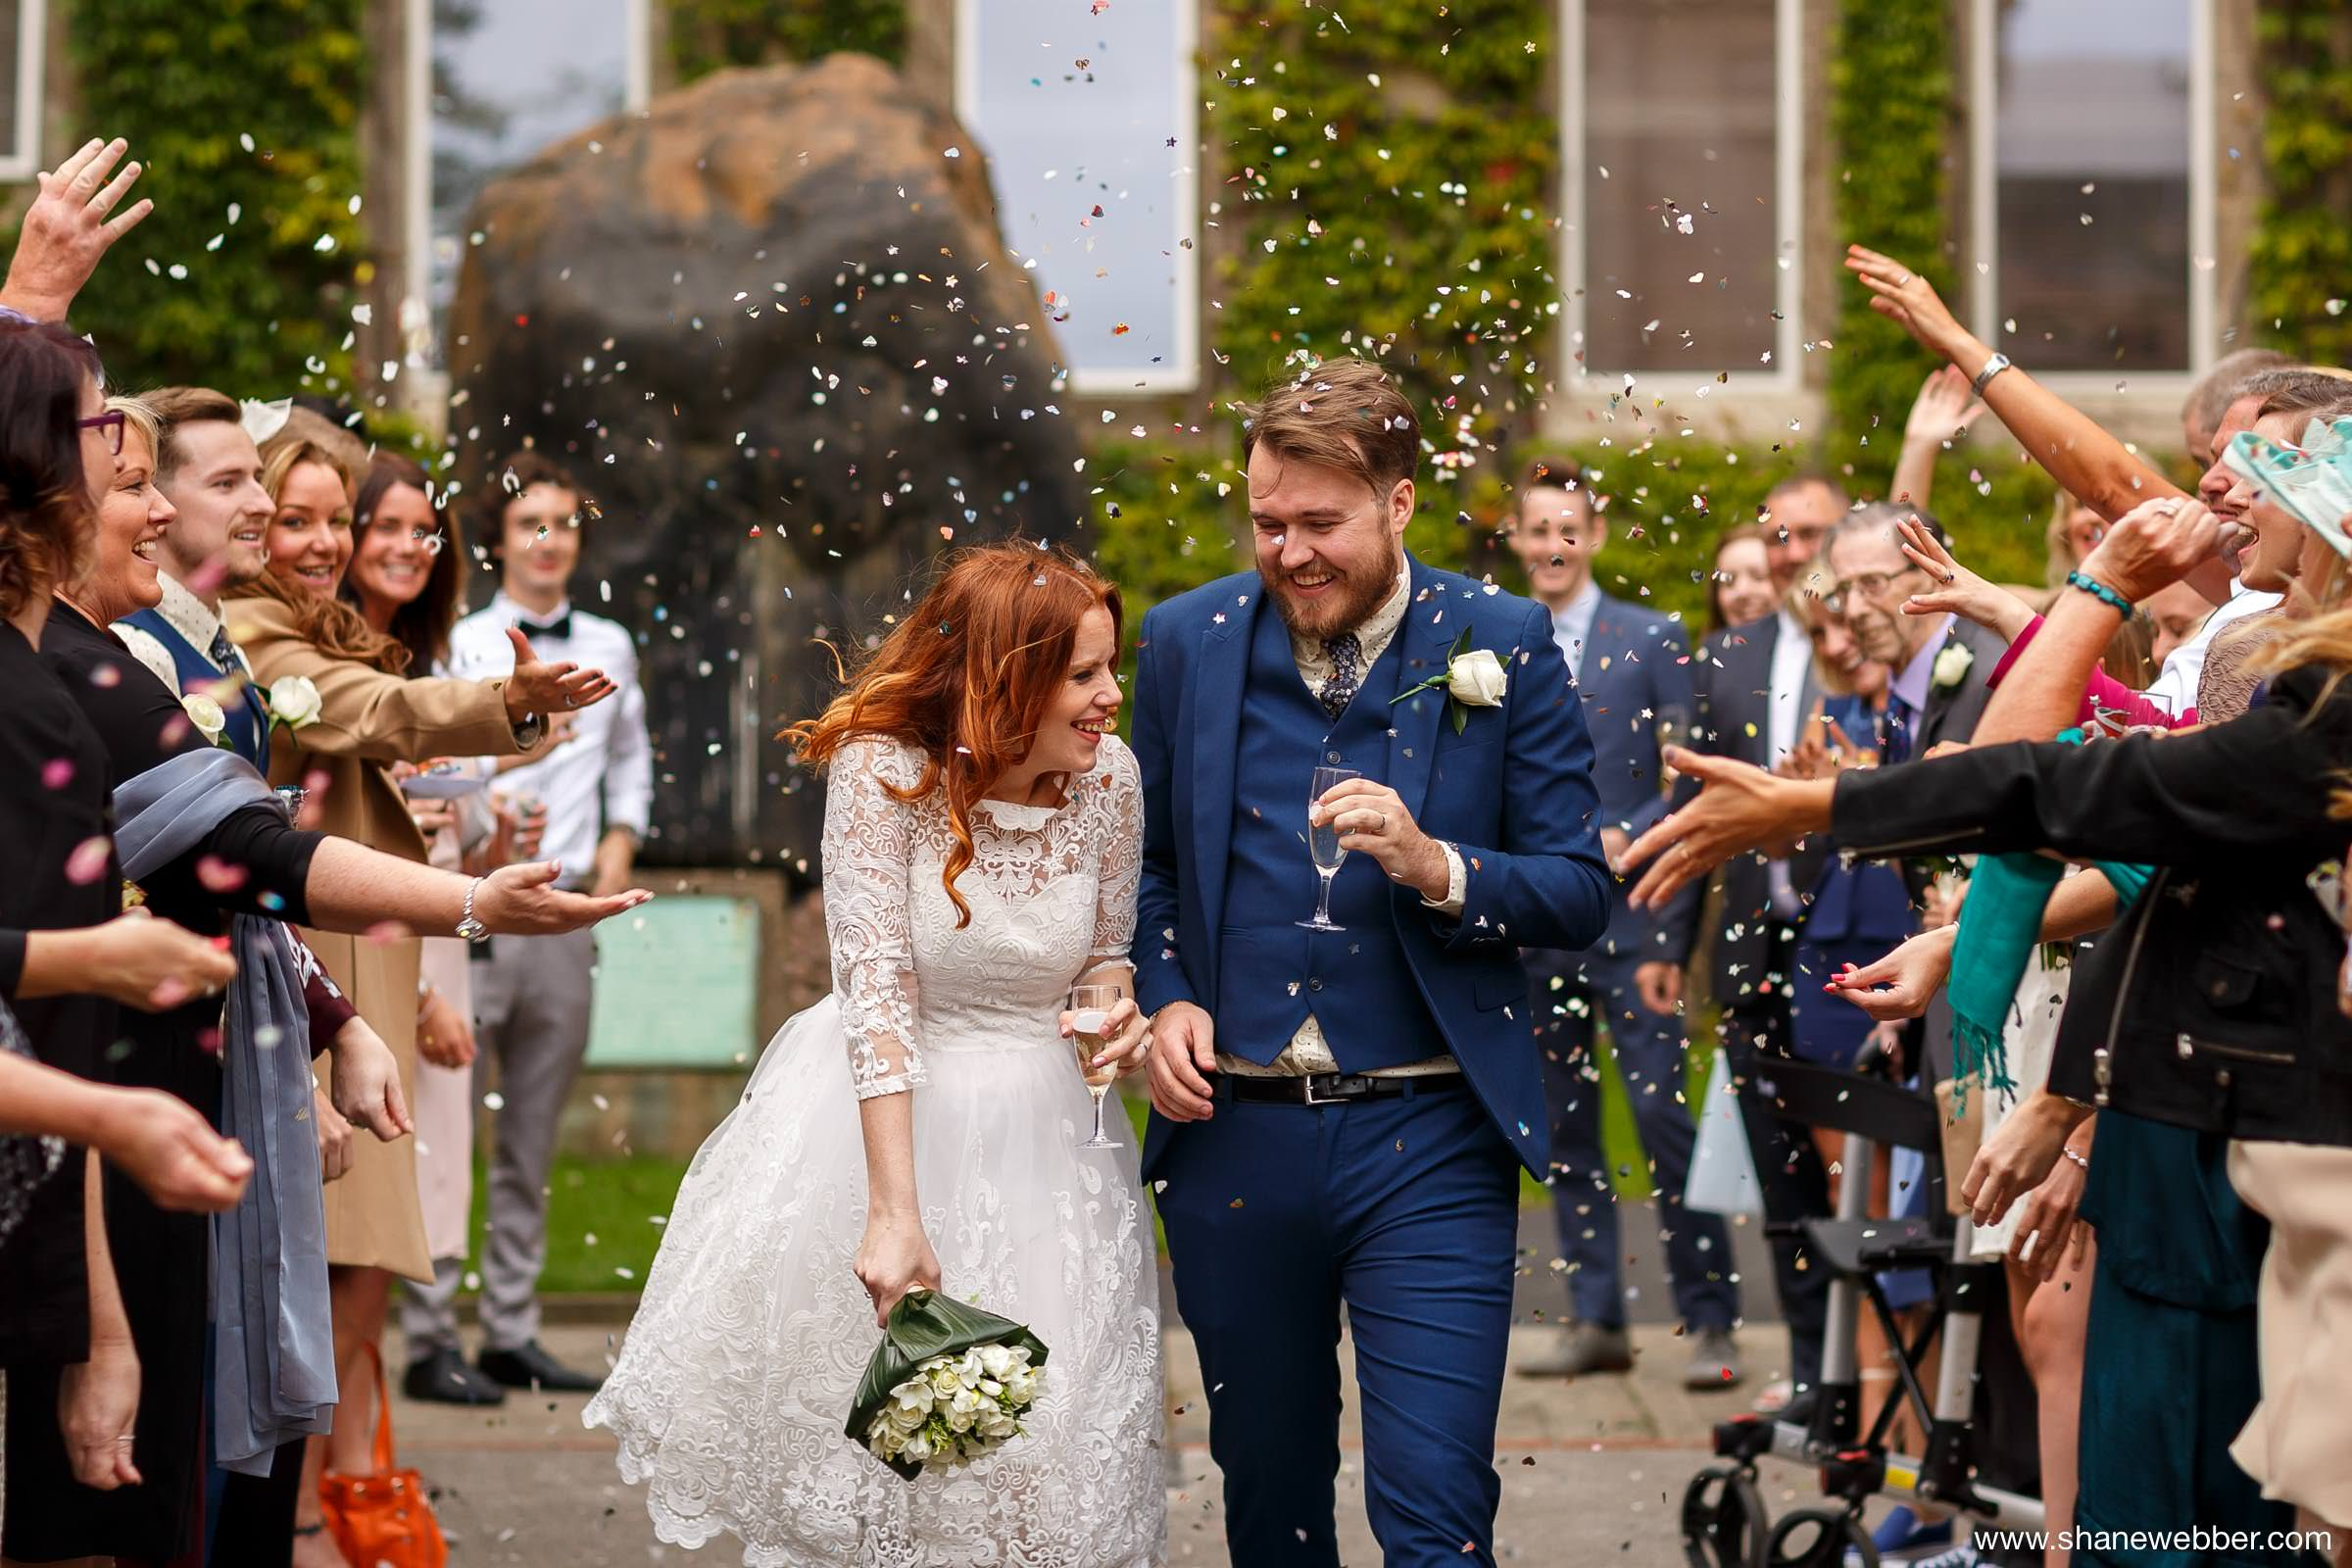 Dinosaur wedding confetti